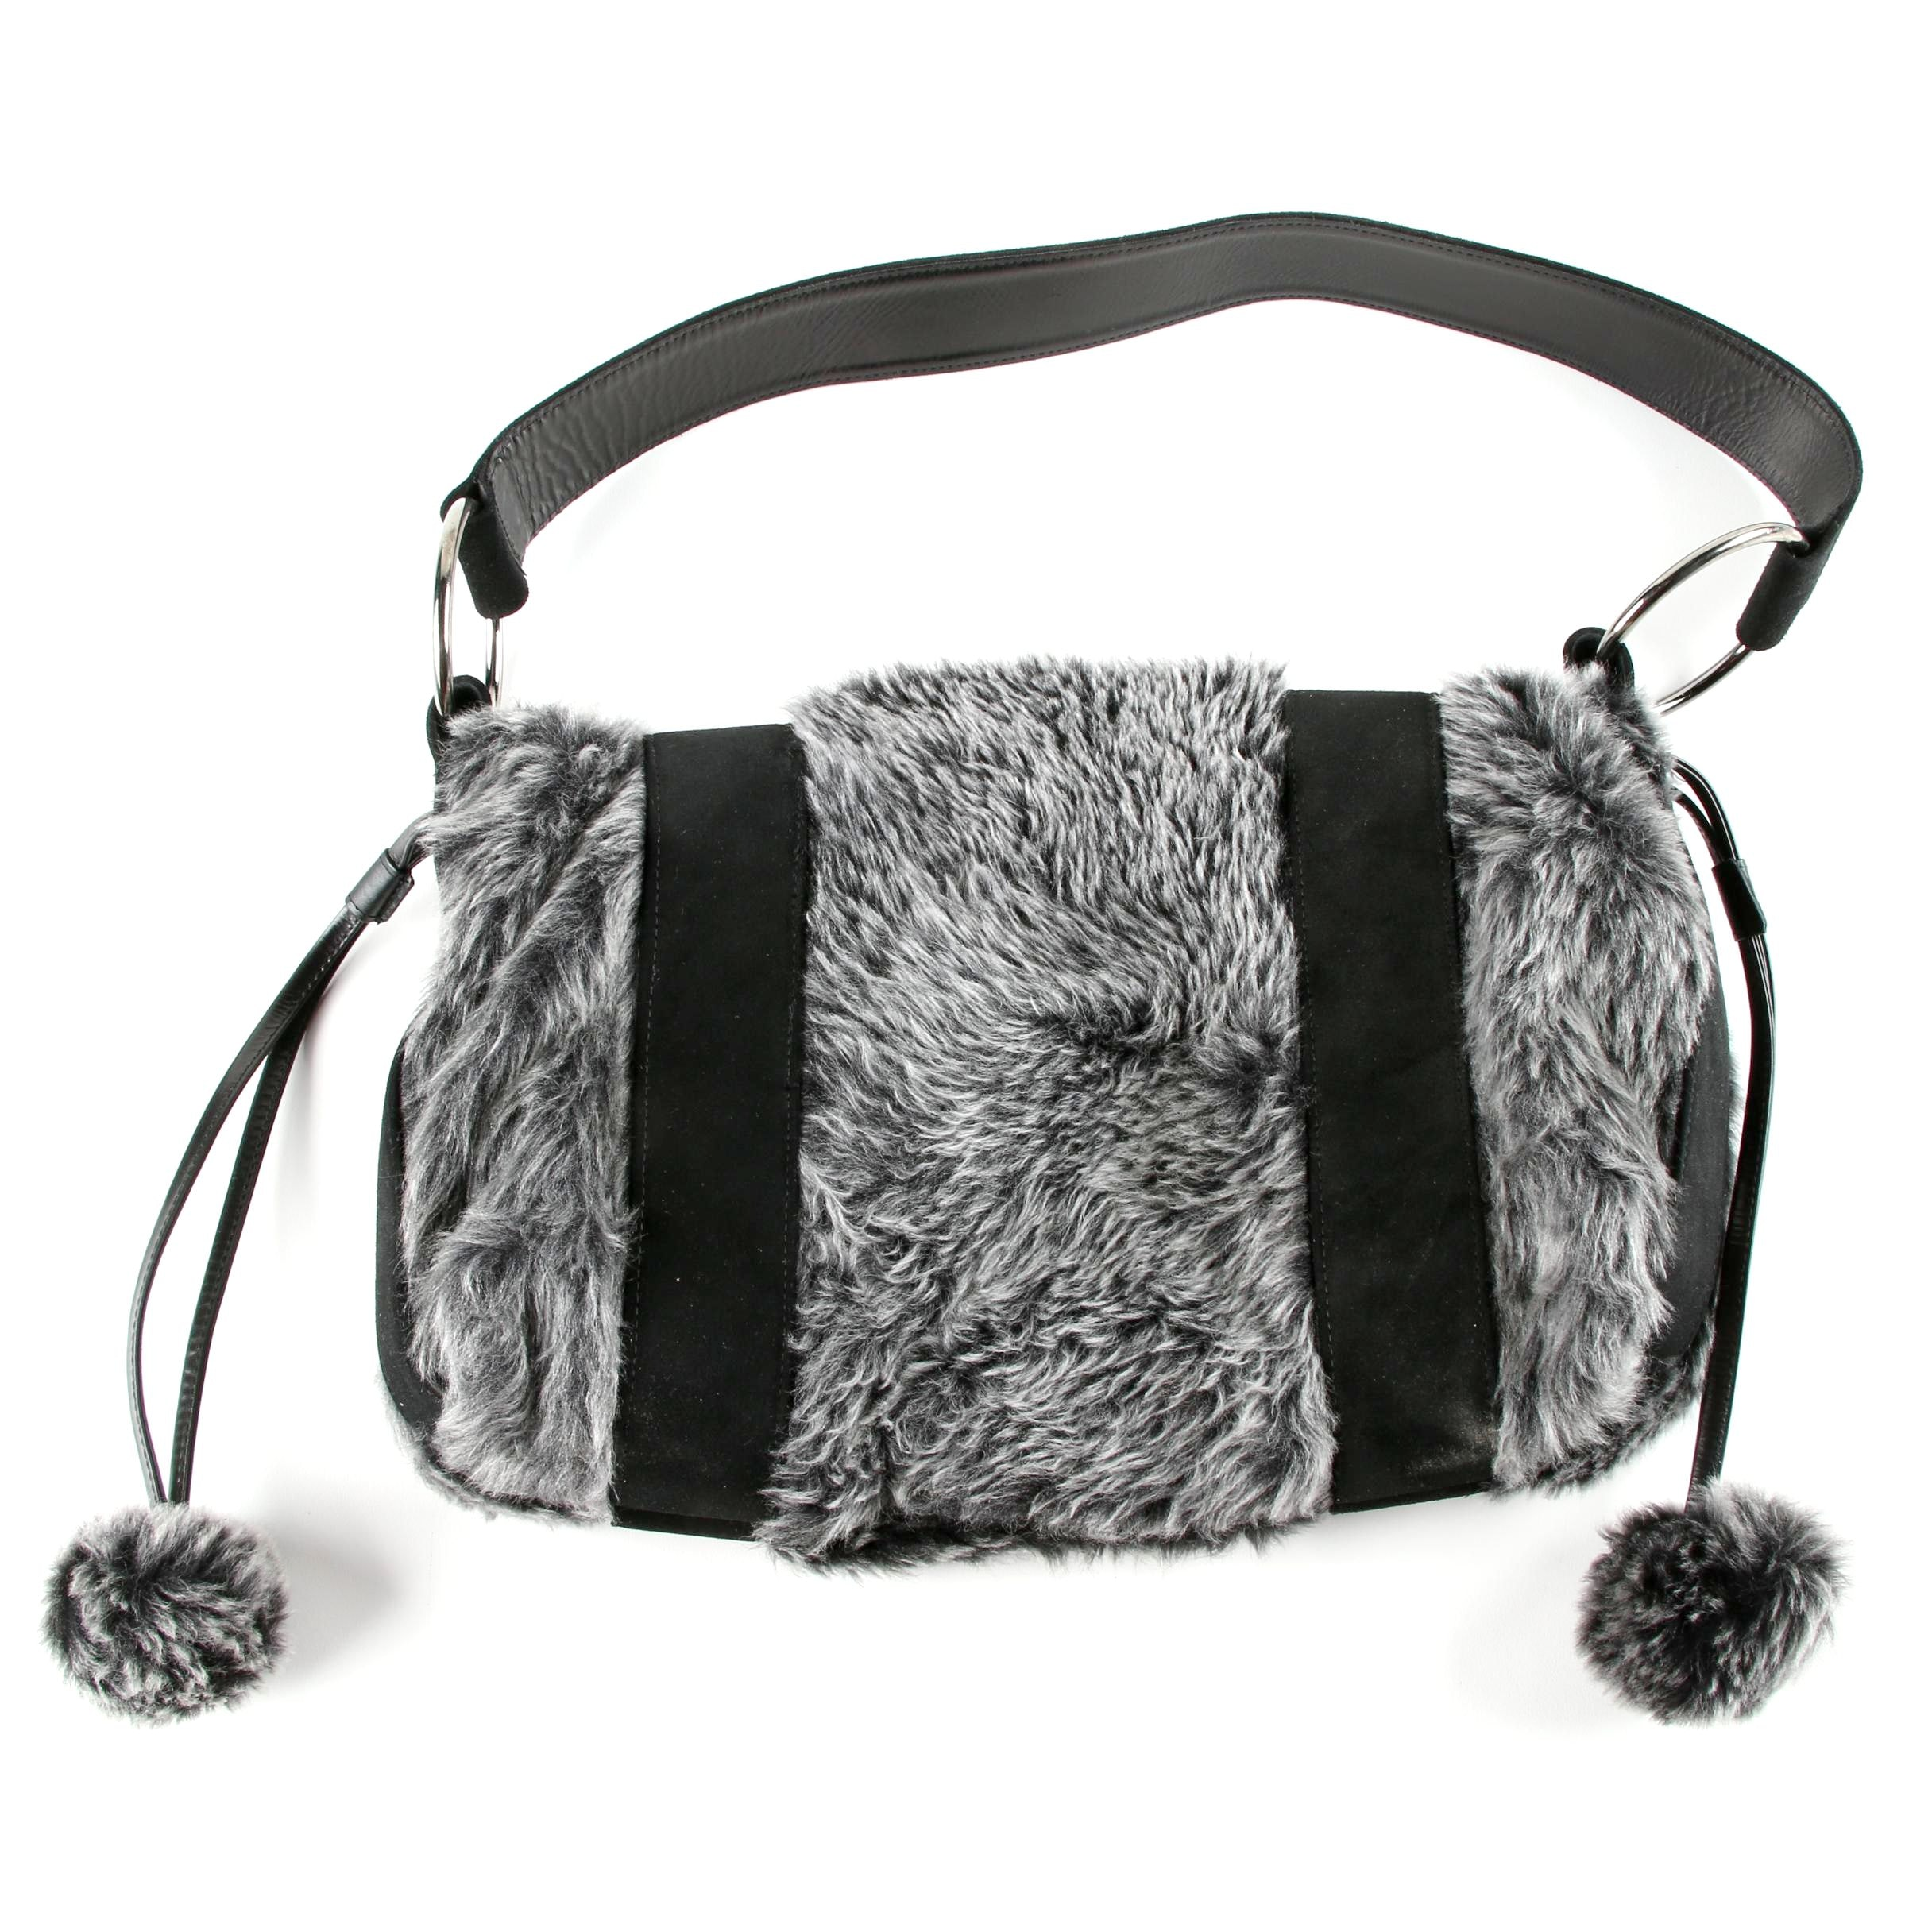 Stuart Weitzman Black and Gray Leather and Faux Fur Shoulder Bag